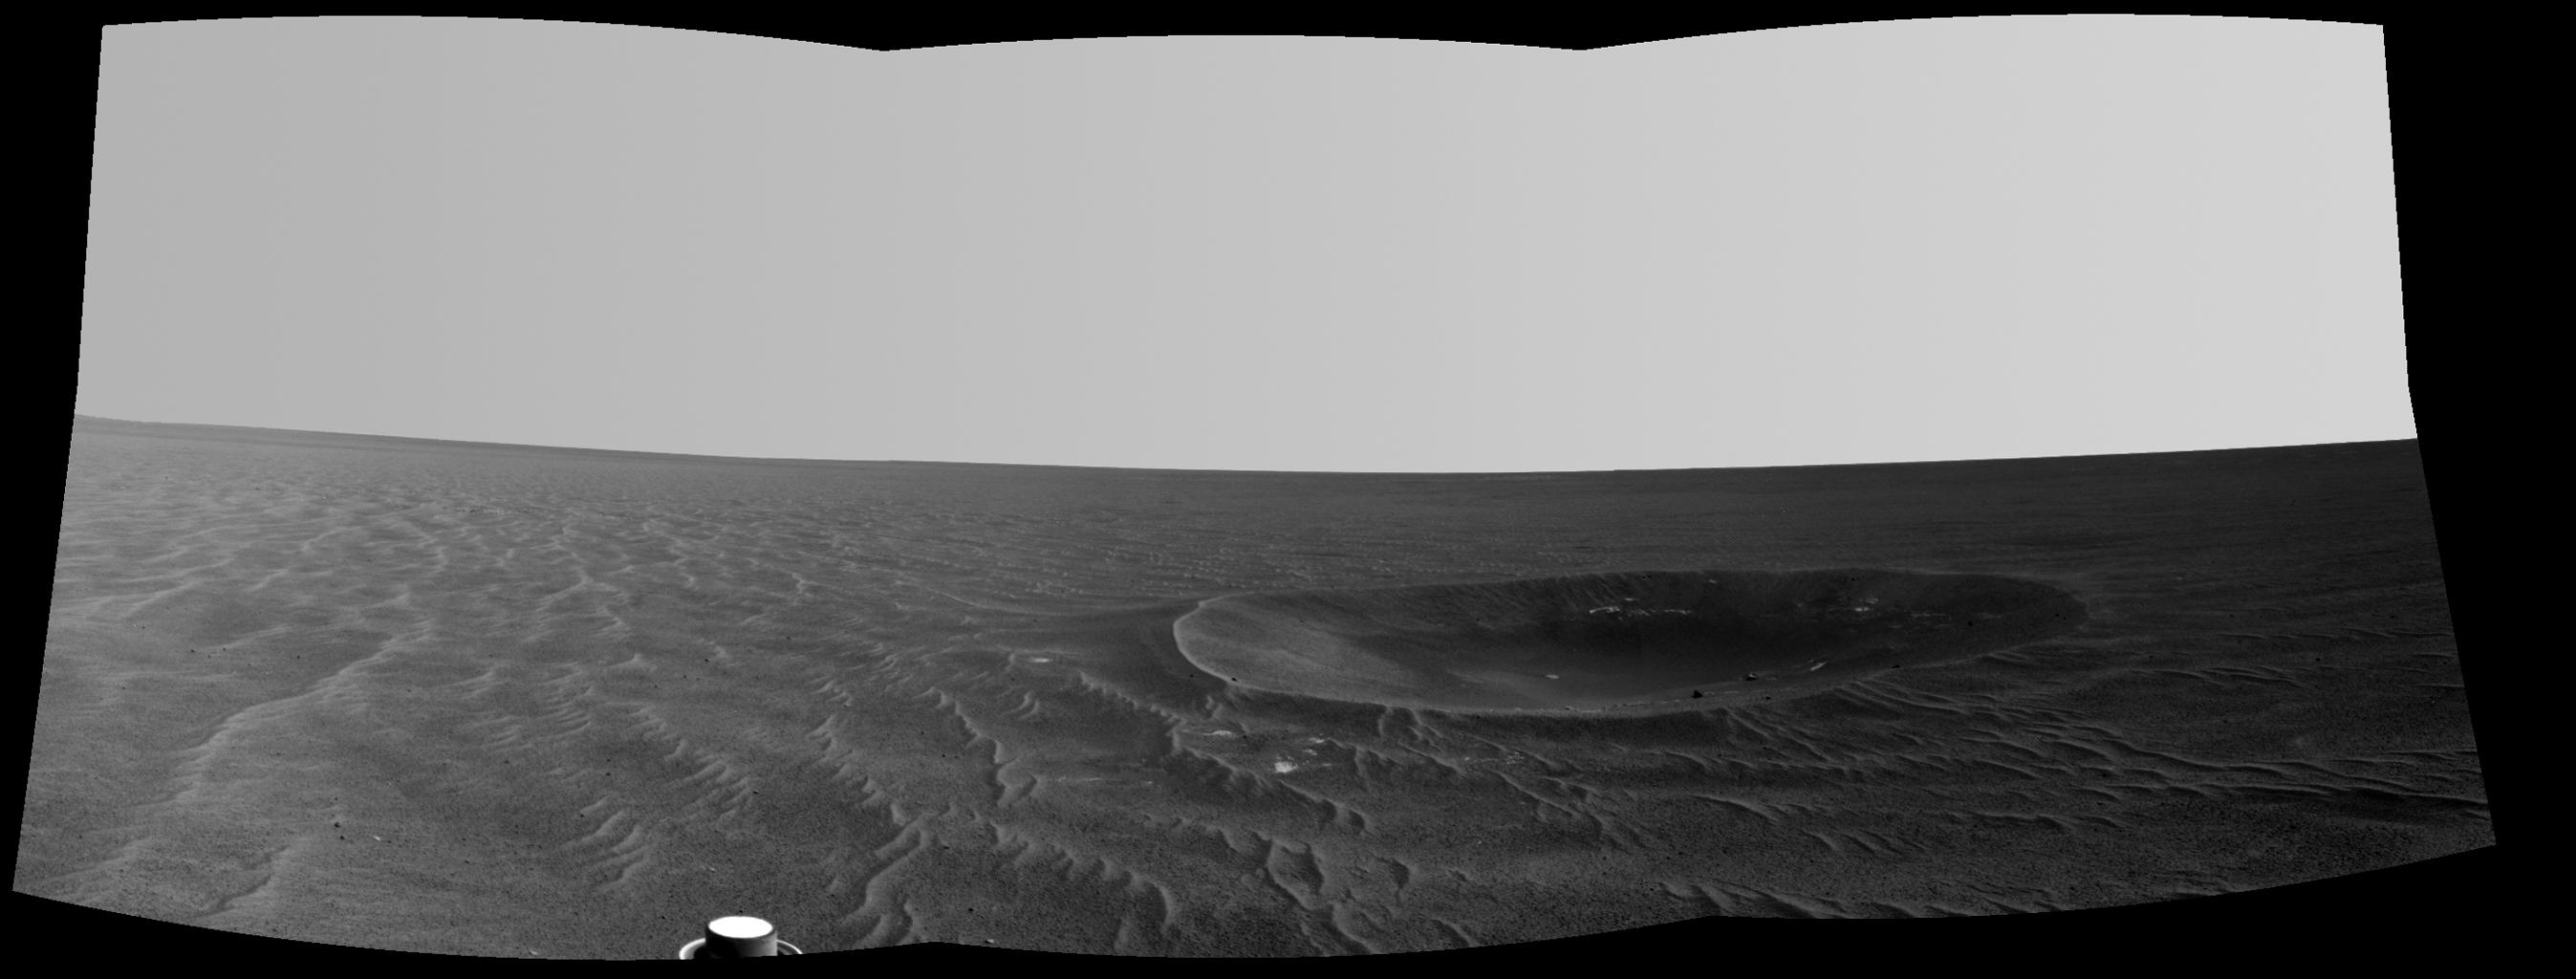 "This mosaic is a view from NASA's Mars Exploration Rover Opportunity of ""Yankee Clipper"" crater which carries the name of the command and service module of NASA's 1969 Apollo 12 mission to the moon."